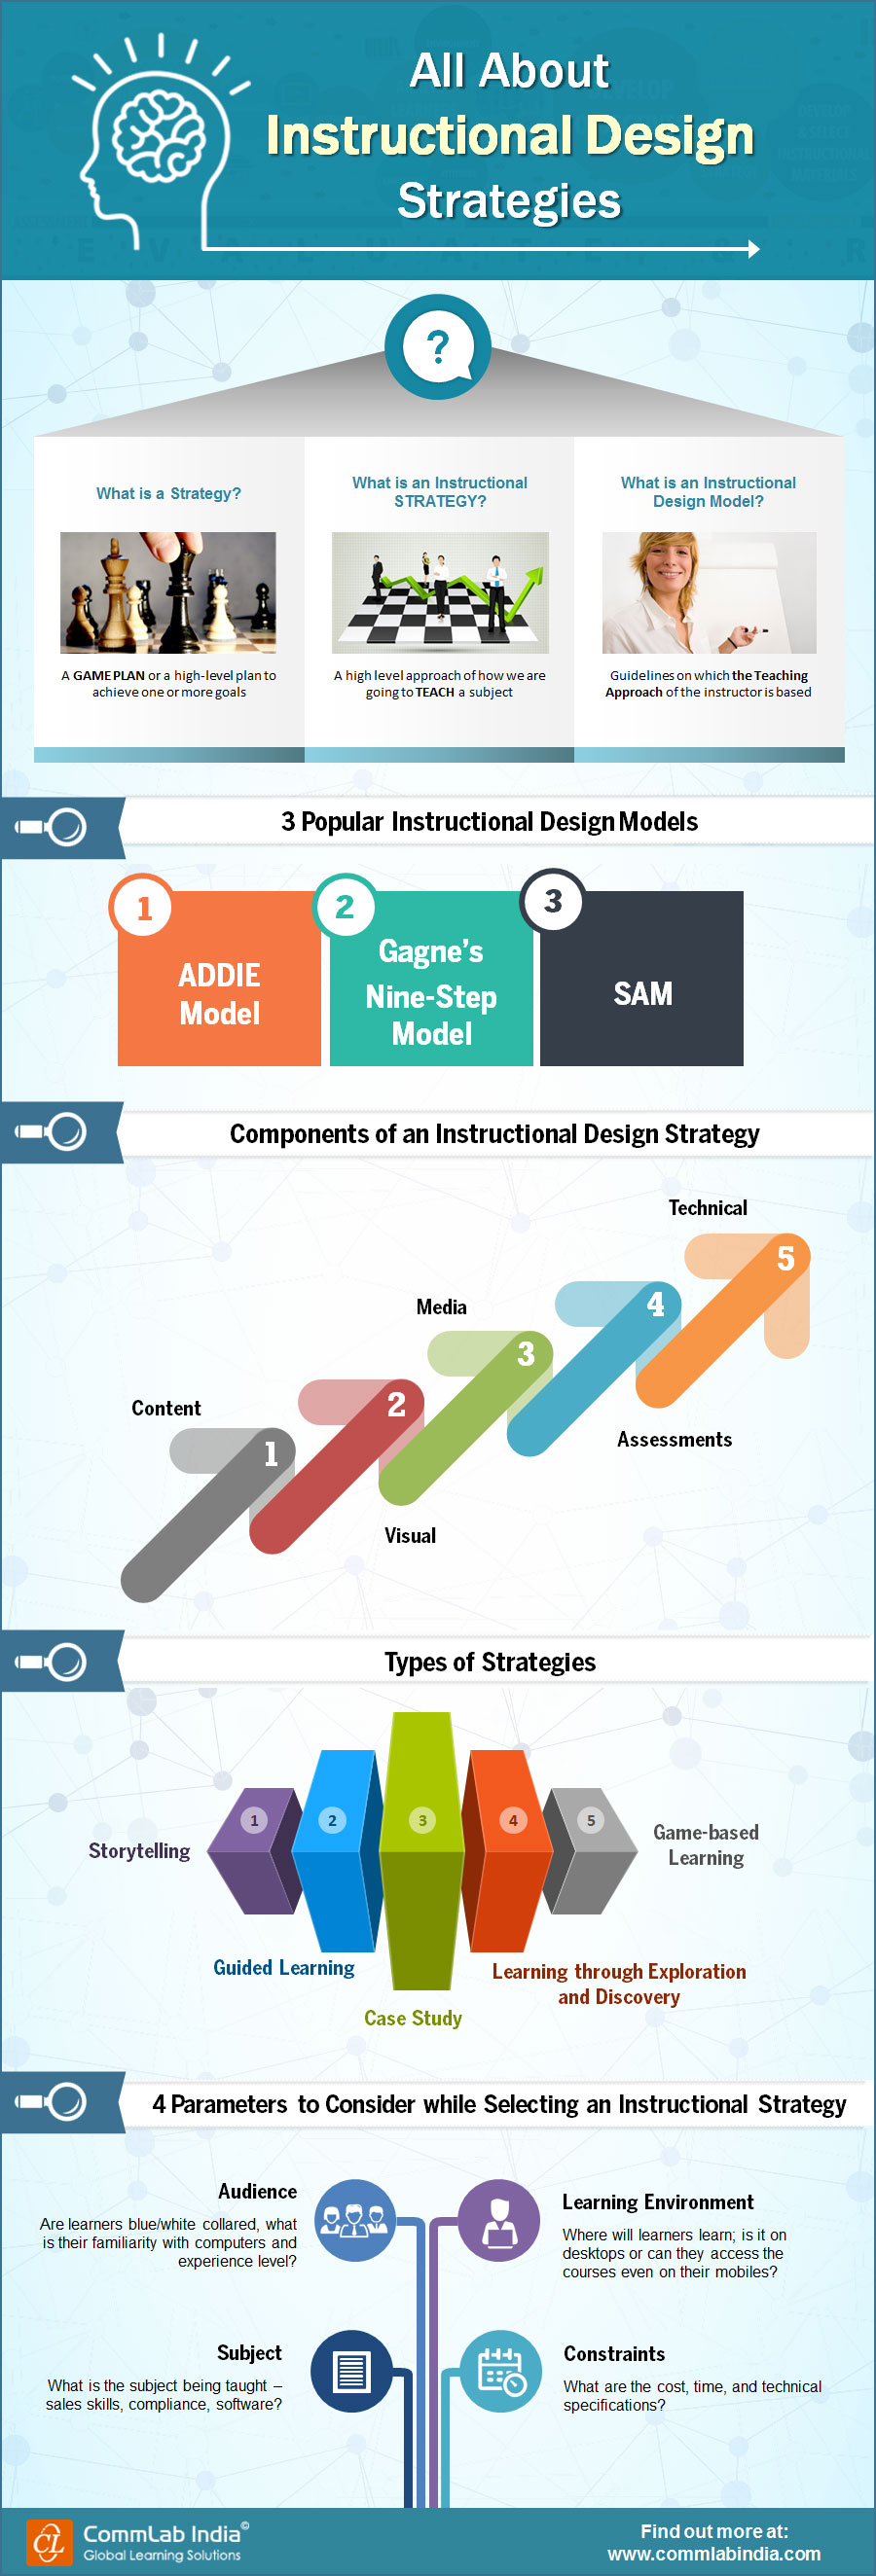 All About Instructional Design Strategies [Infographic]